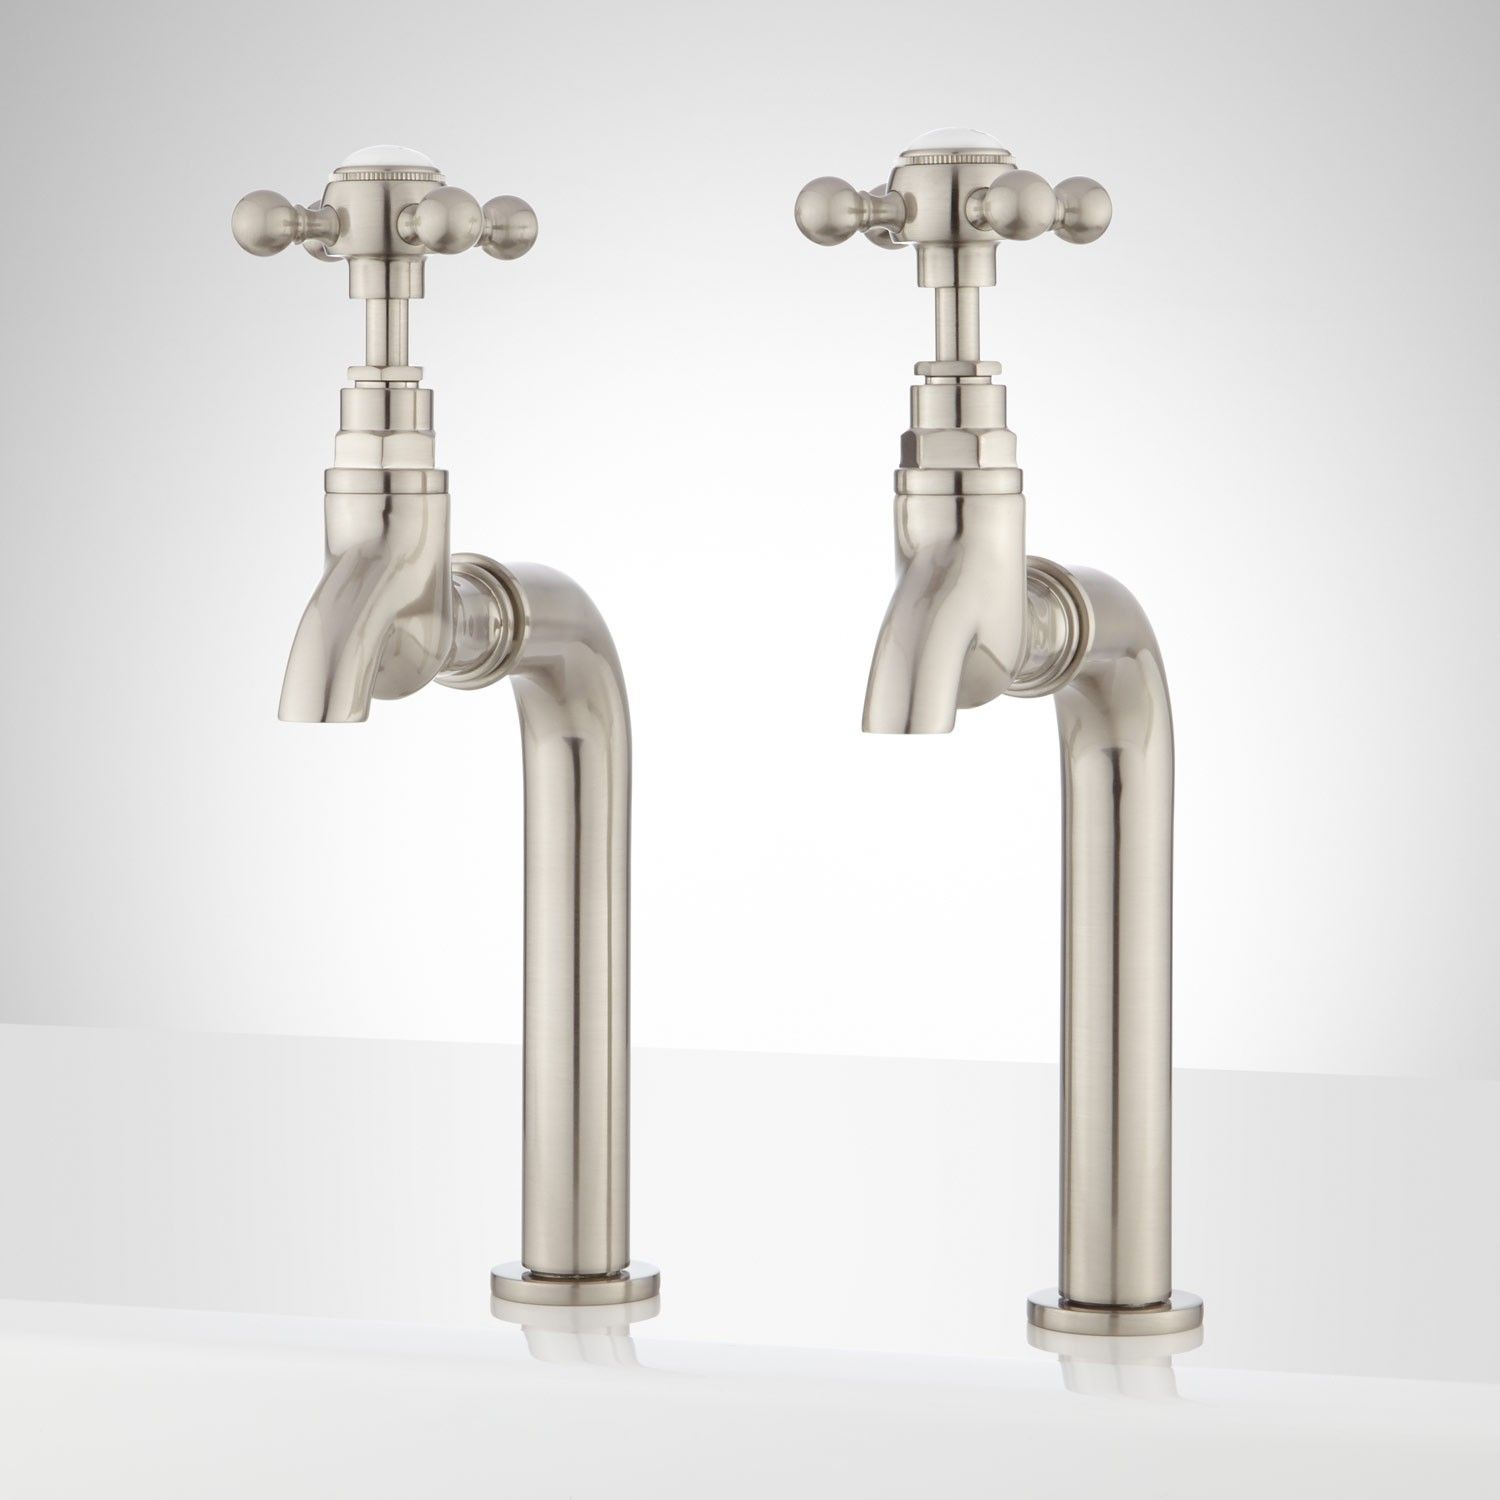 Classic Non-Mixing Tap Roman Tub Faucet | Tubs, Faucet and Taps